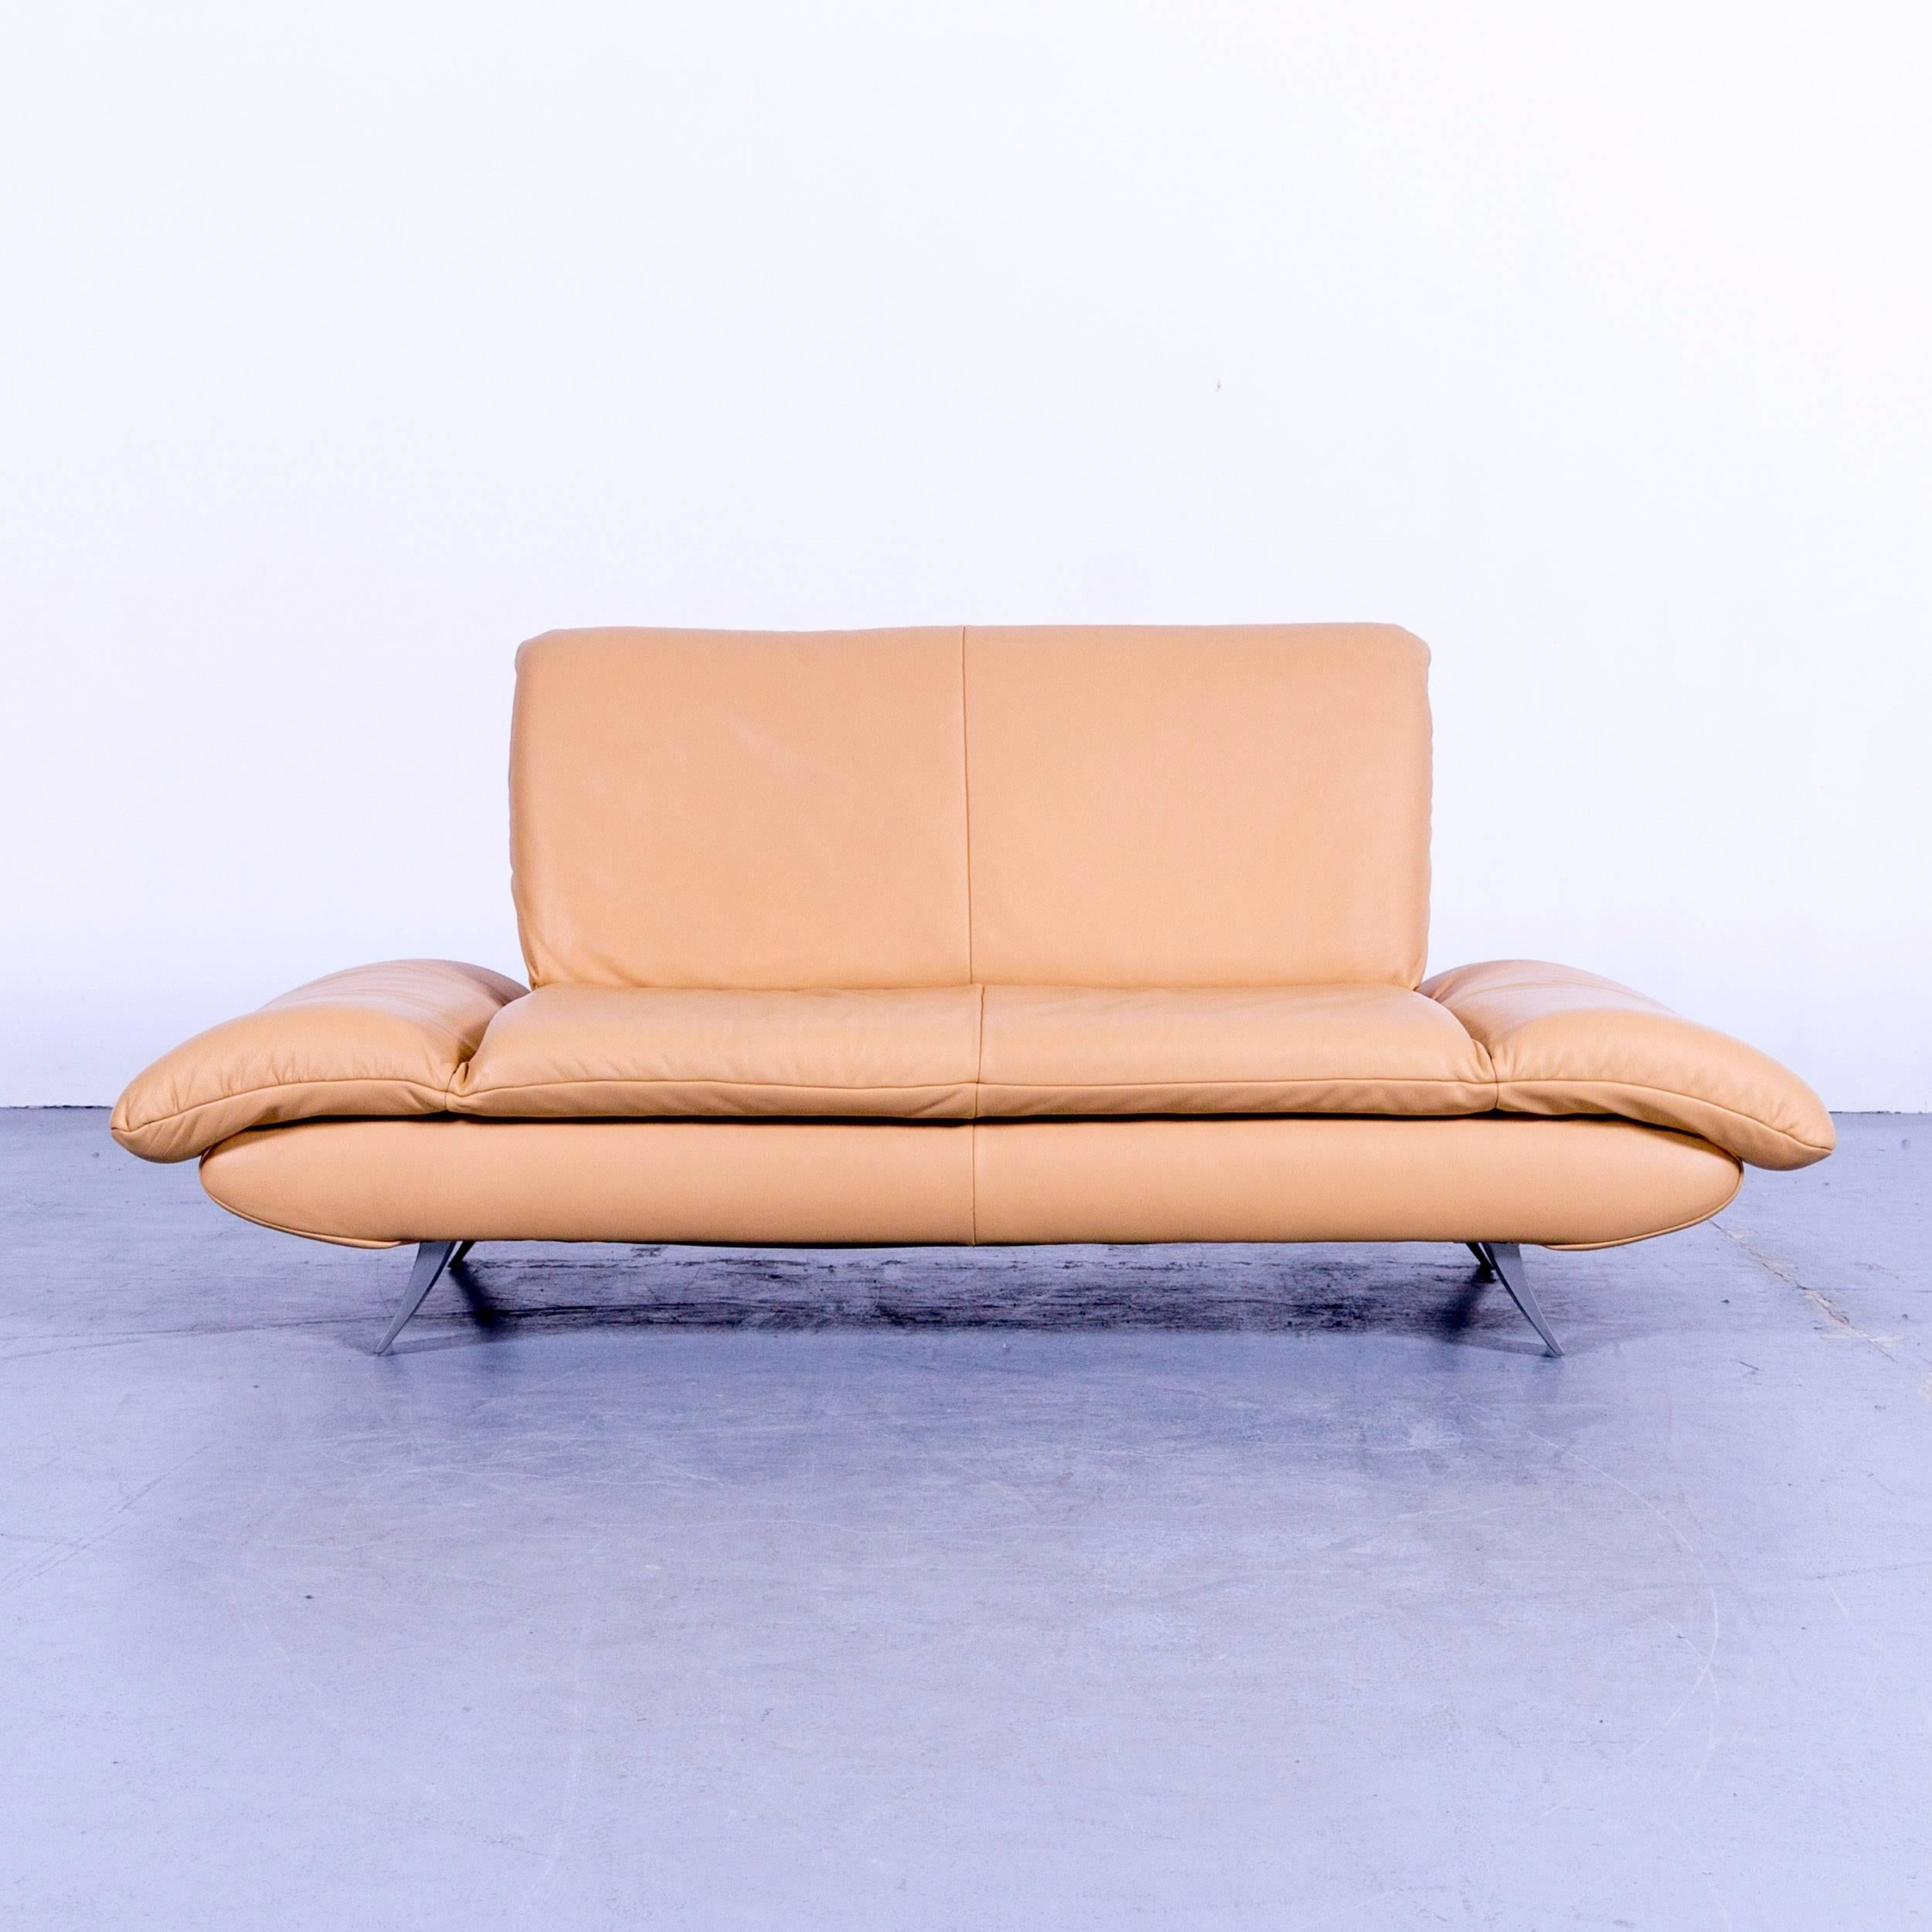 Koinor Rossini Designer Two Seat Sofa Ocher Yellow Beige Leather Function  Modern, In A